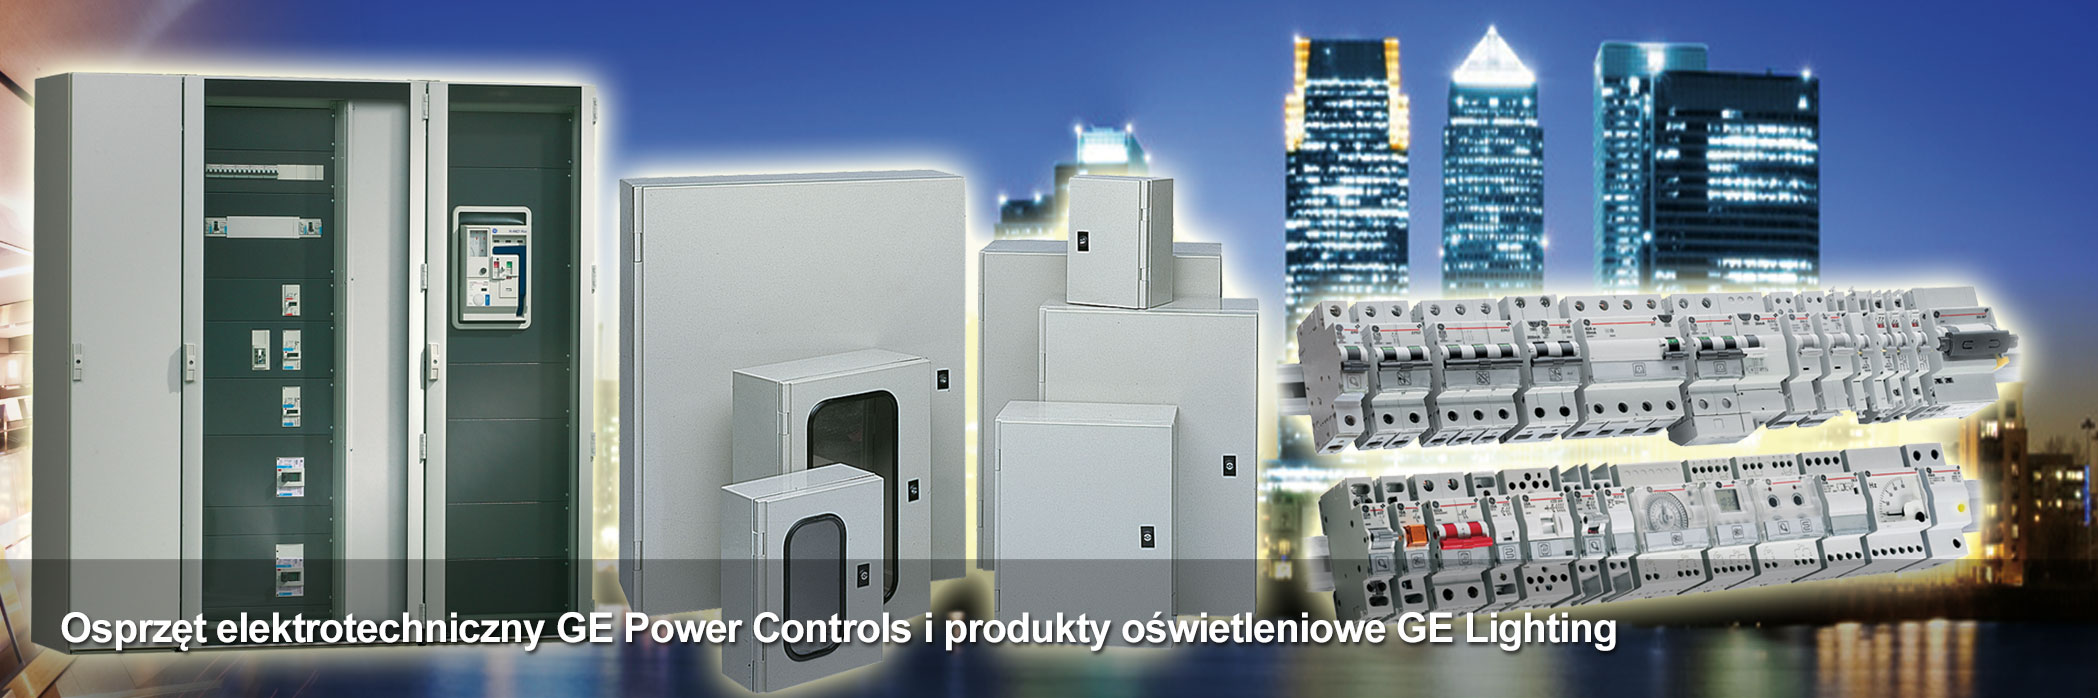 GE Power Control